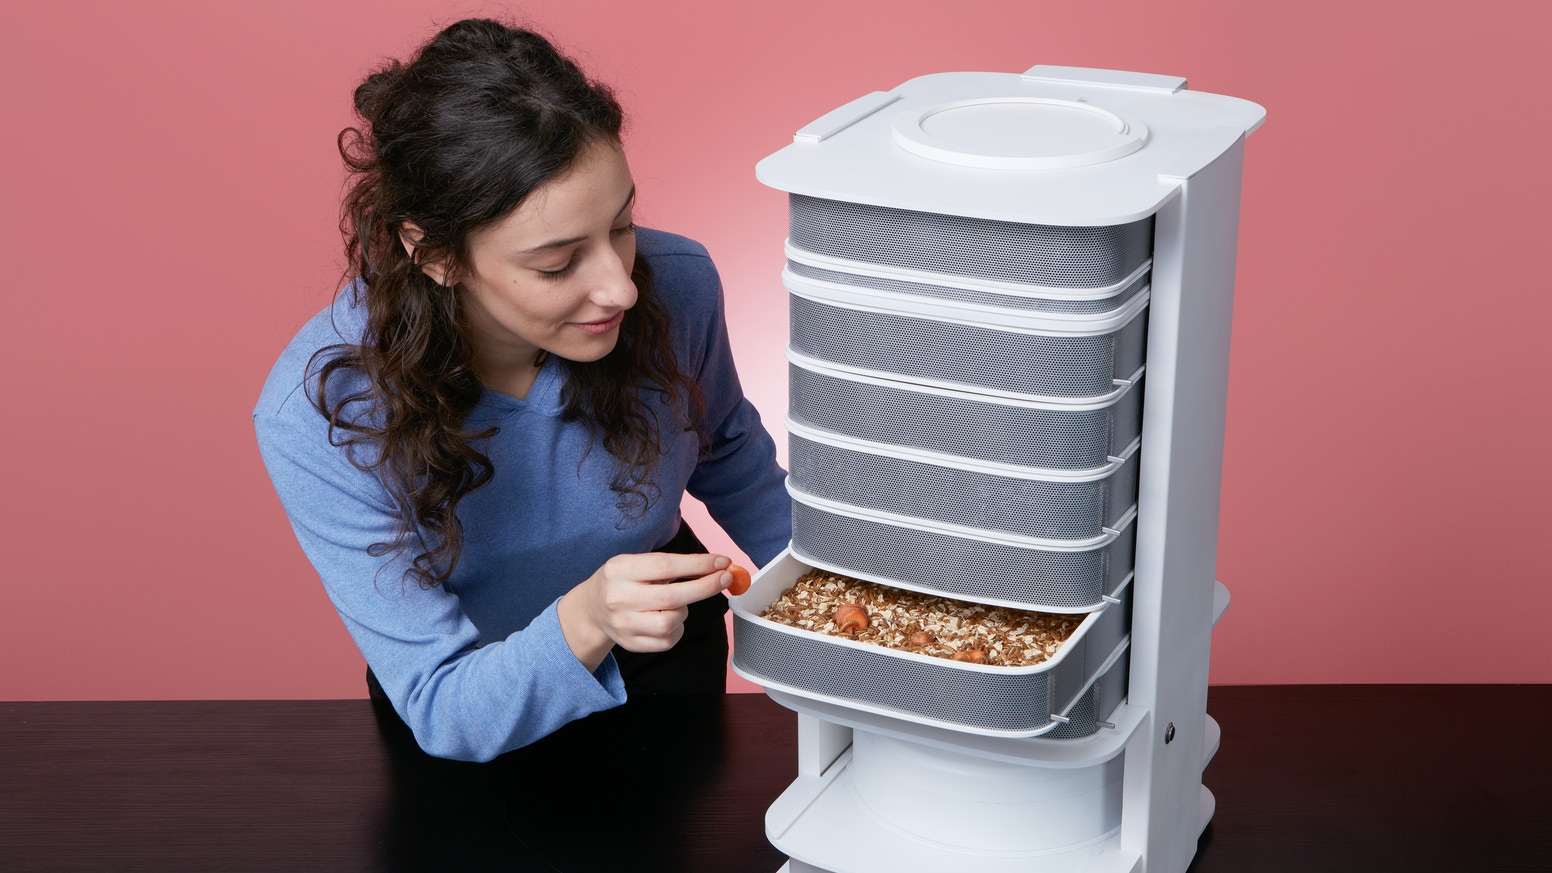 The World�s First Desktop Hive For Edible Insects : Empowering You To Grow A